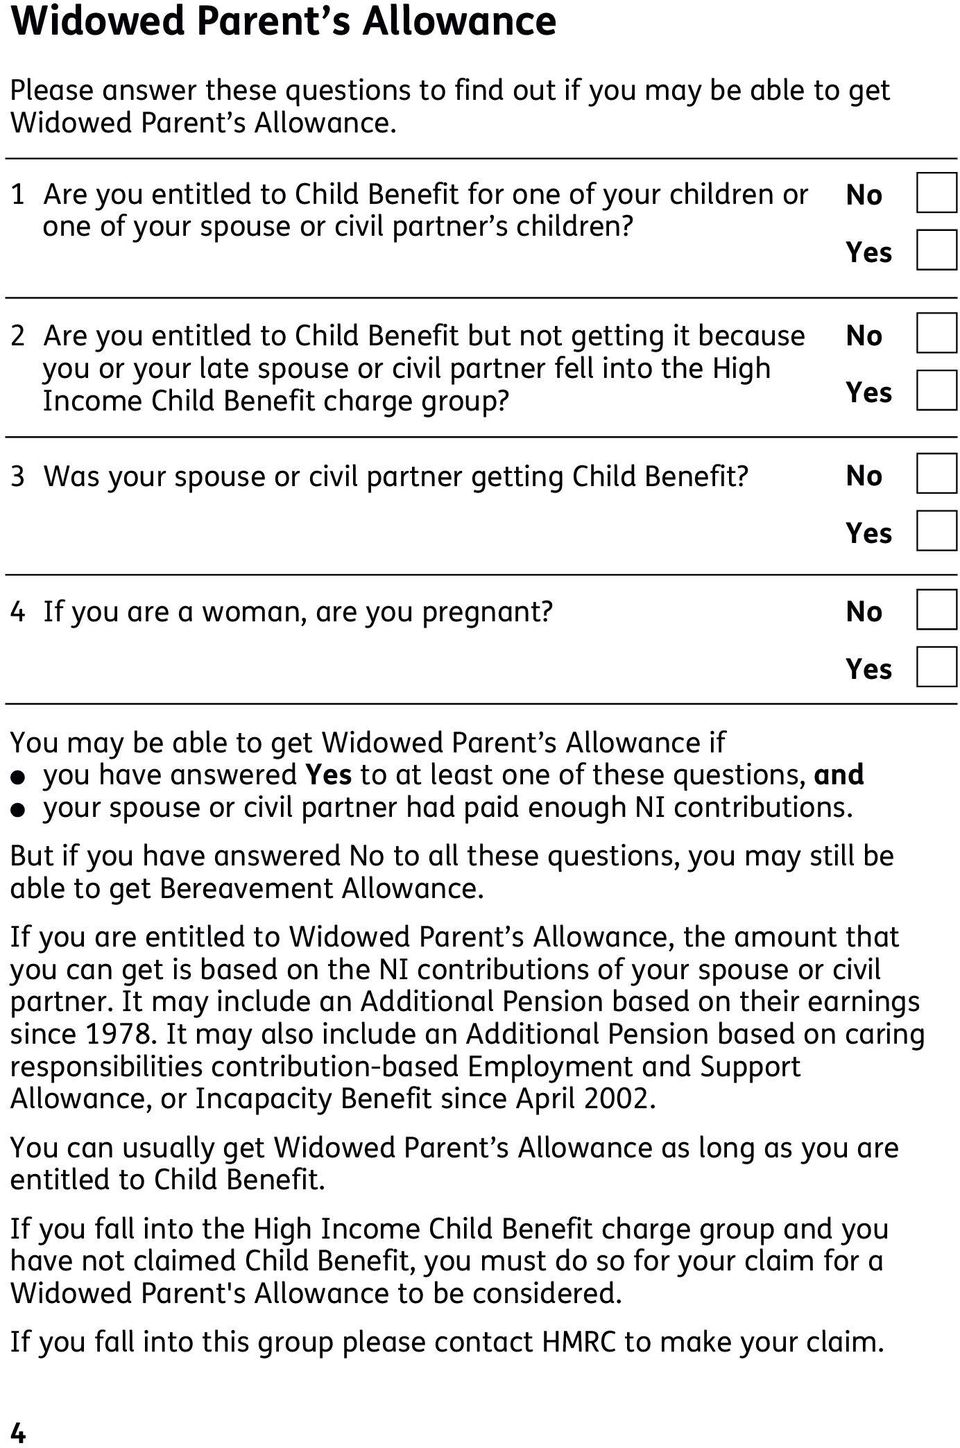 2 Are you entited to Chid Benefit but not getting it because you or your ate spouse or civi partner fe into the High Income Chid Benefit charge group?